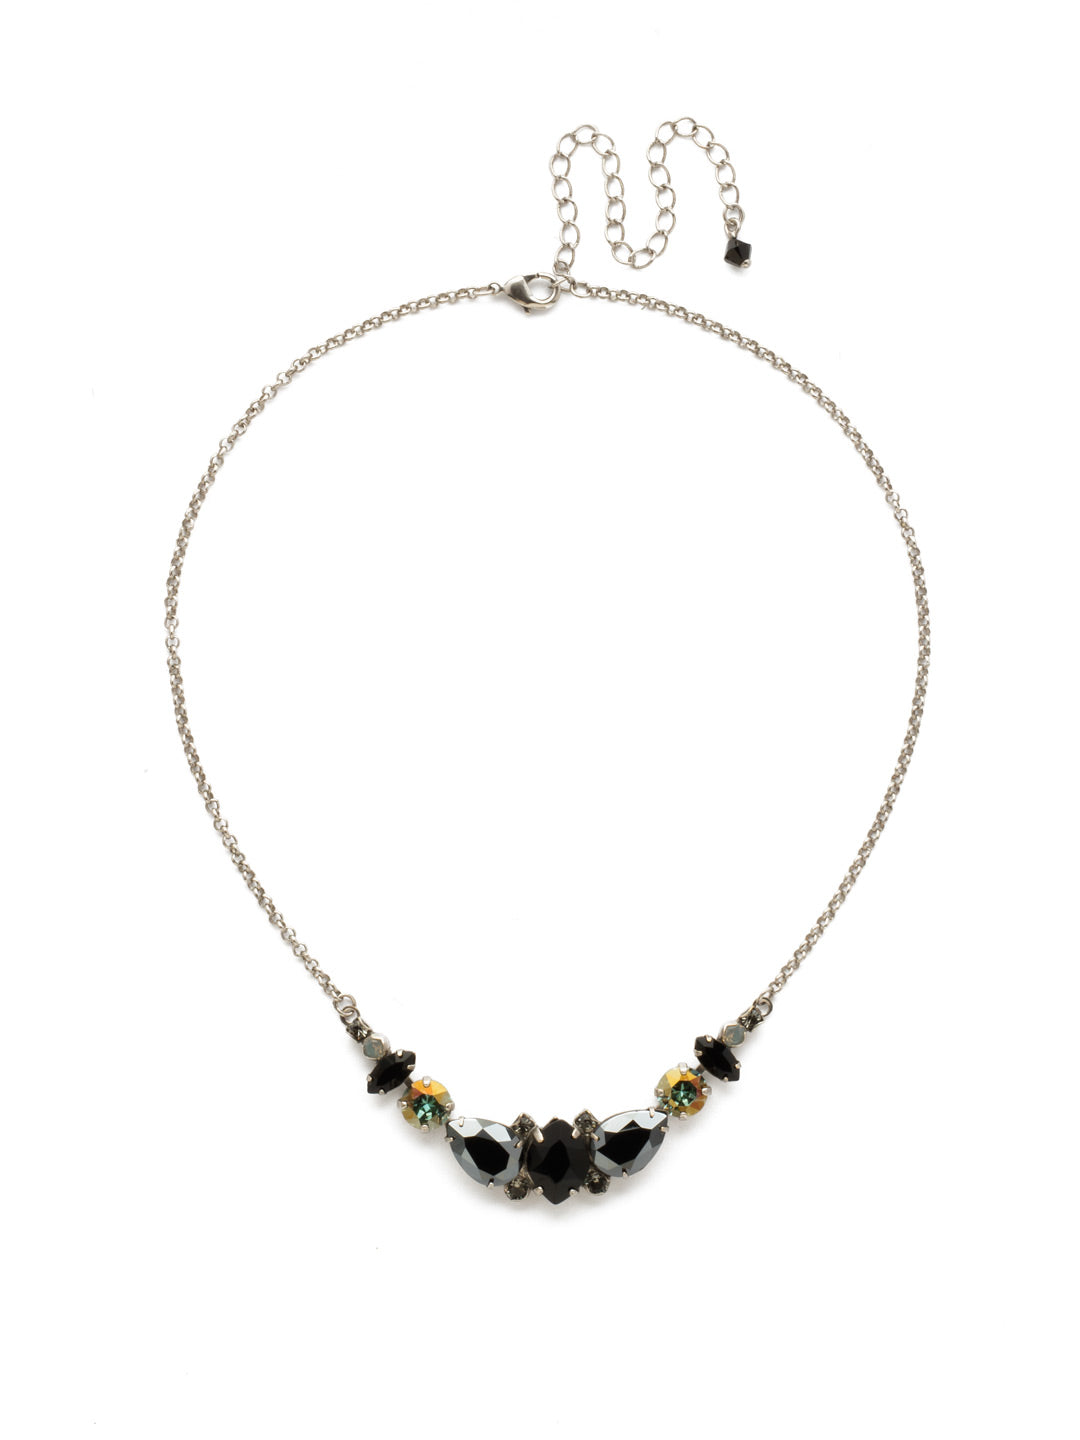 Crysanthemum Statement Necklace - NDN4ASBON